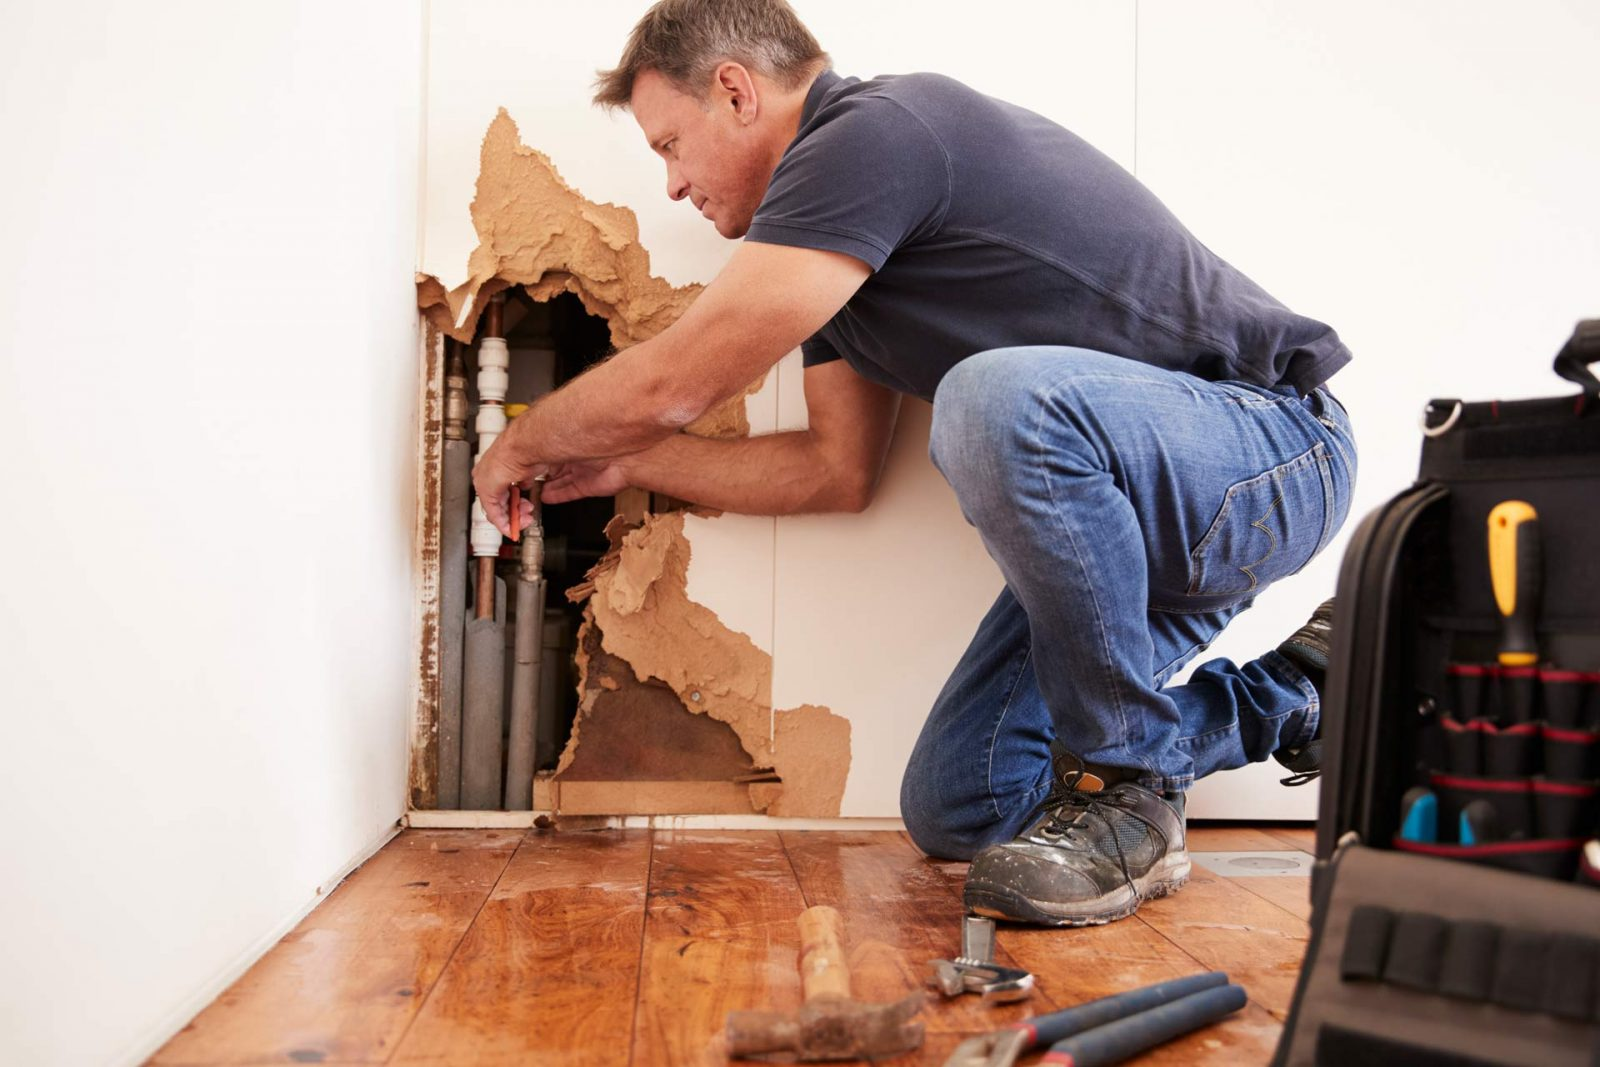 How do You Tell if Your Pipes are Busted?